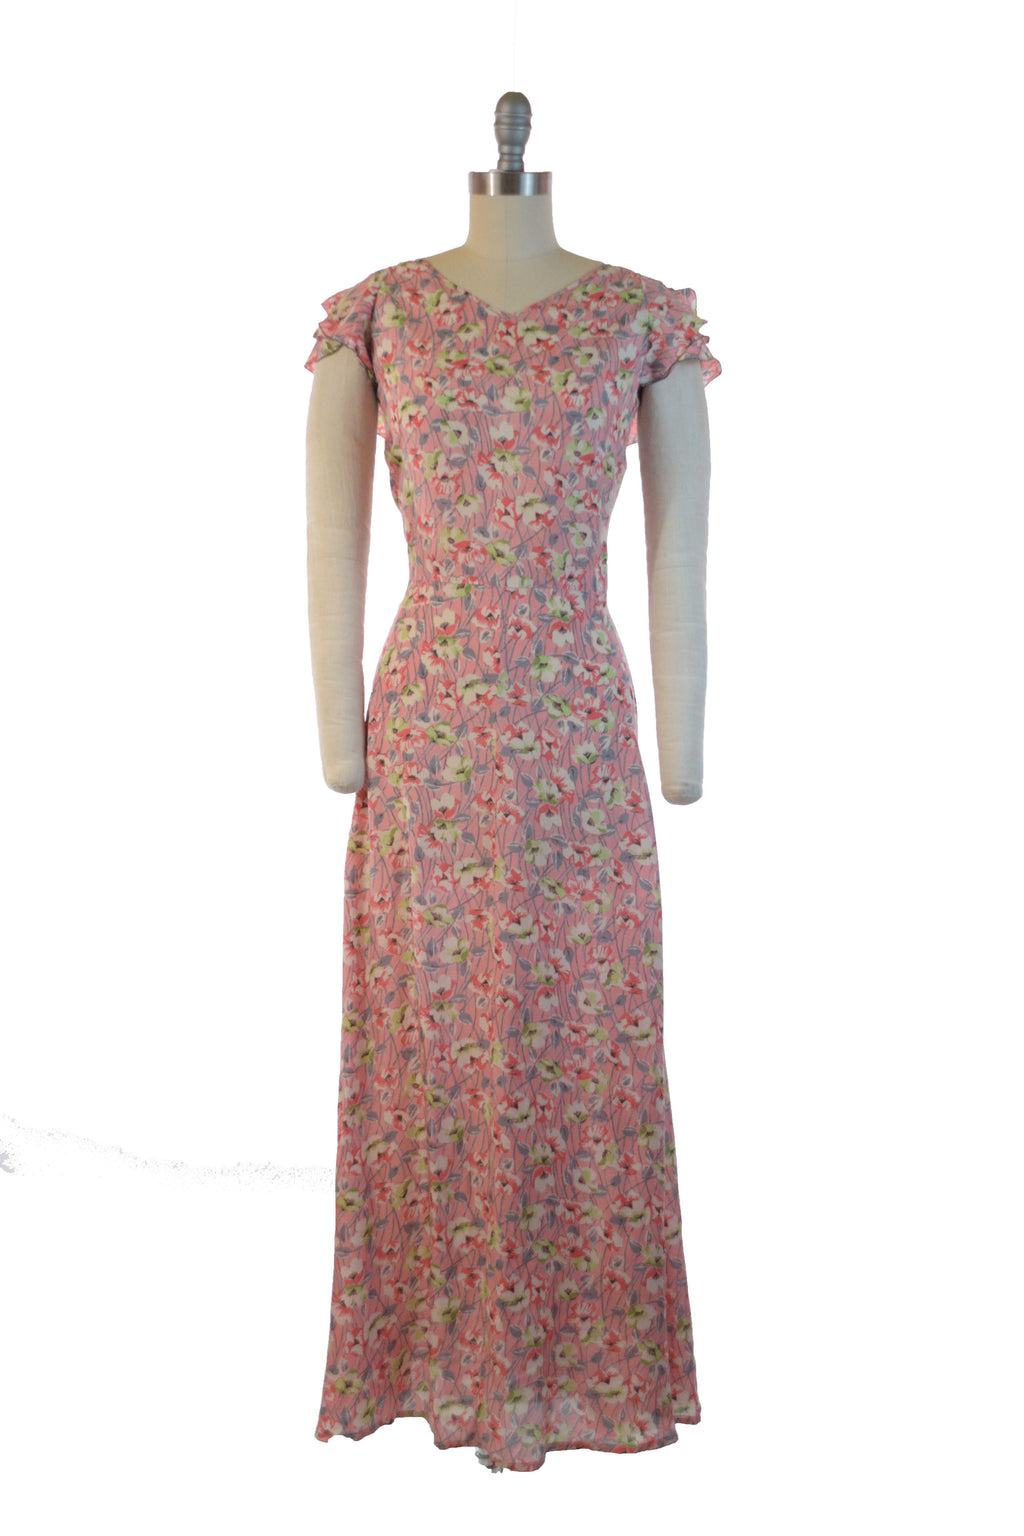 Lovely 1930s Pink Floral Summer Dress with Grey, Green and Coral Print and Ruffled Accent.